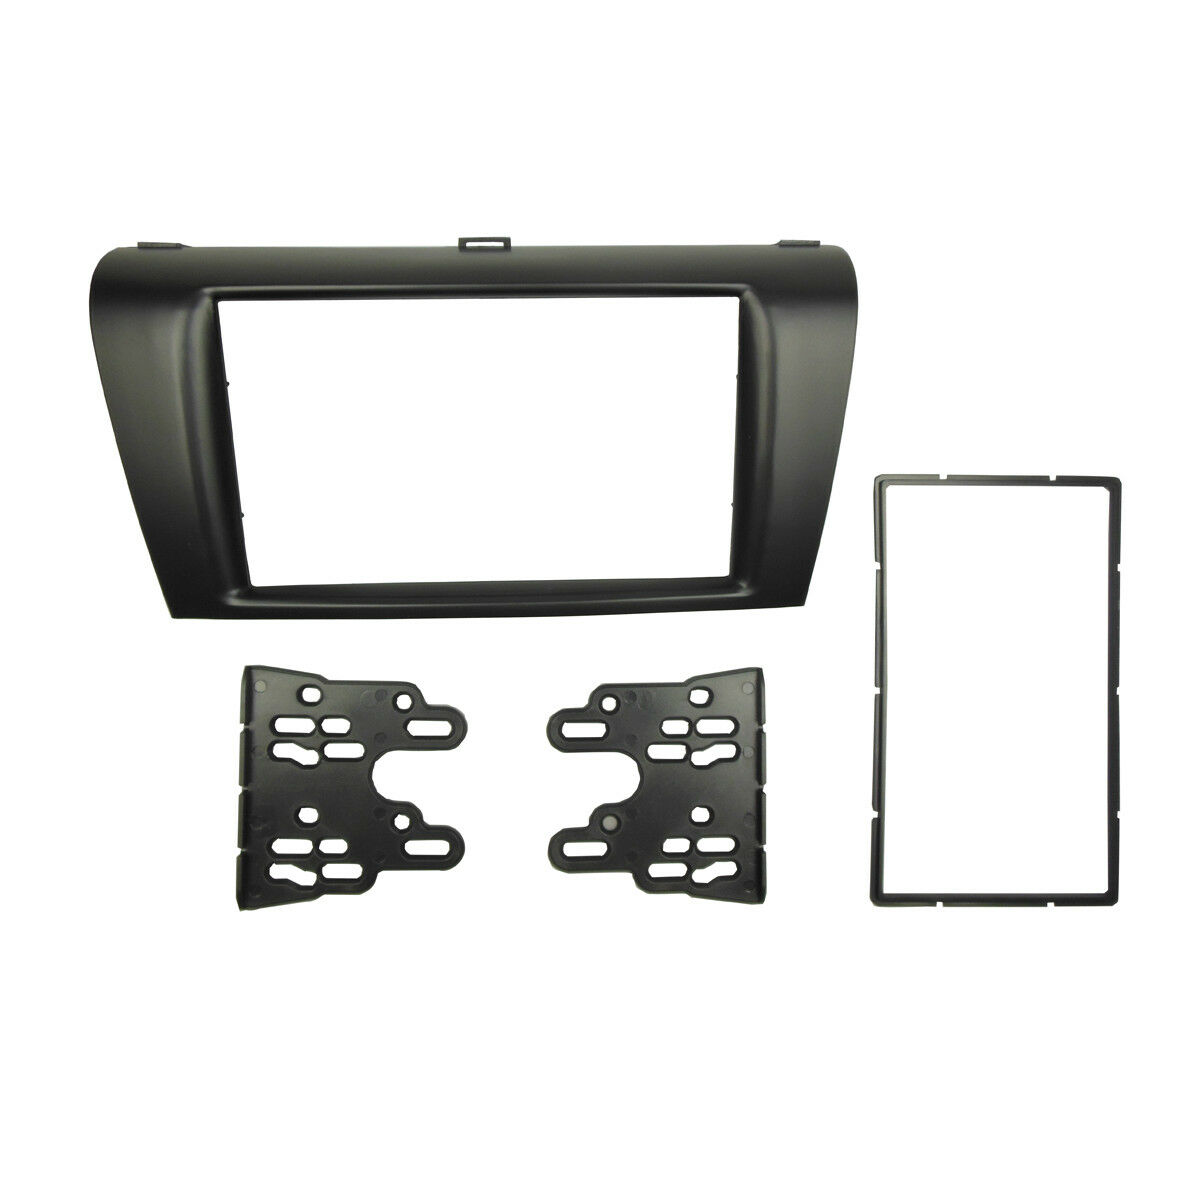 For Mazda 3 2004 2008 Axela 2006 Double Din Fascia Radio Cd Car Stereo Fitting Kit Wiring Loom Ebay Refitting Dash